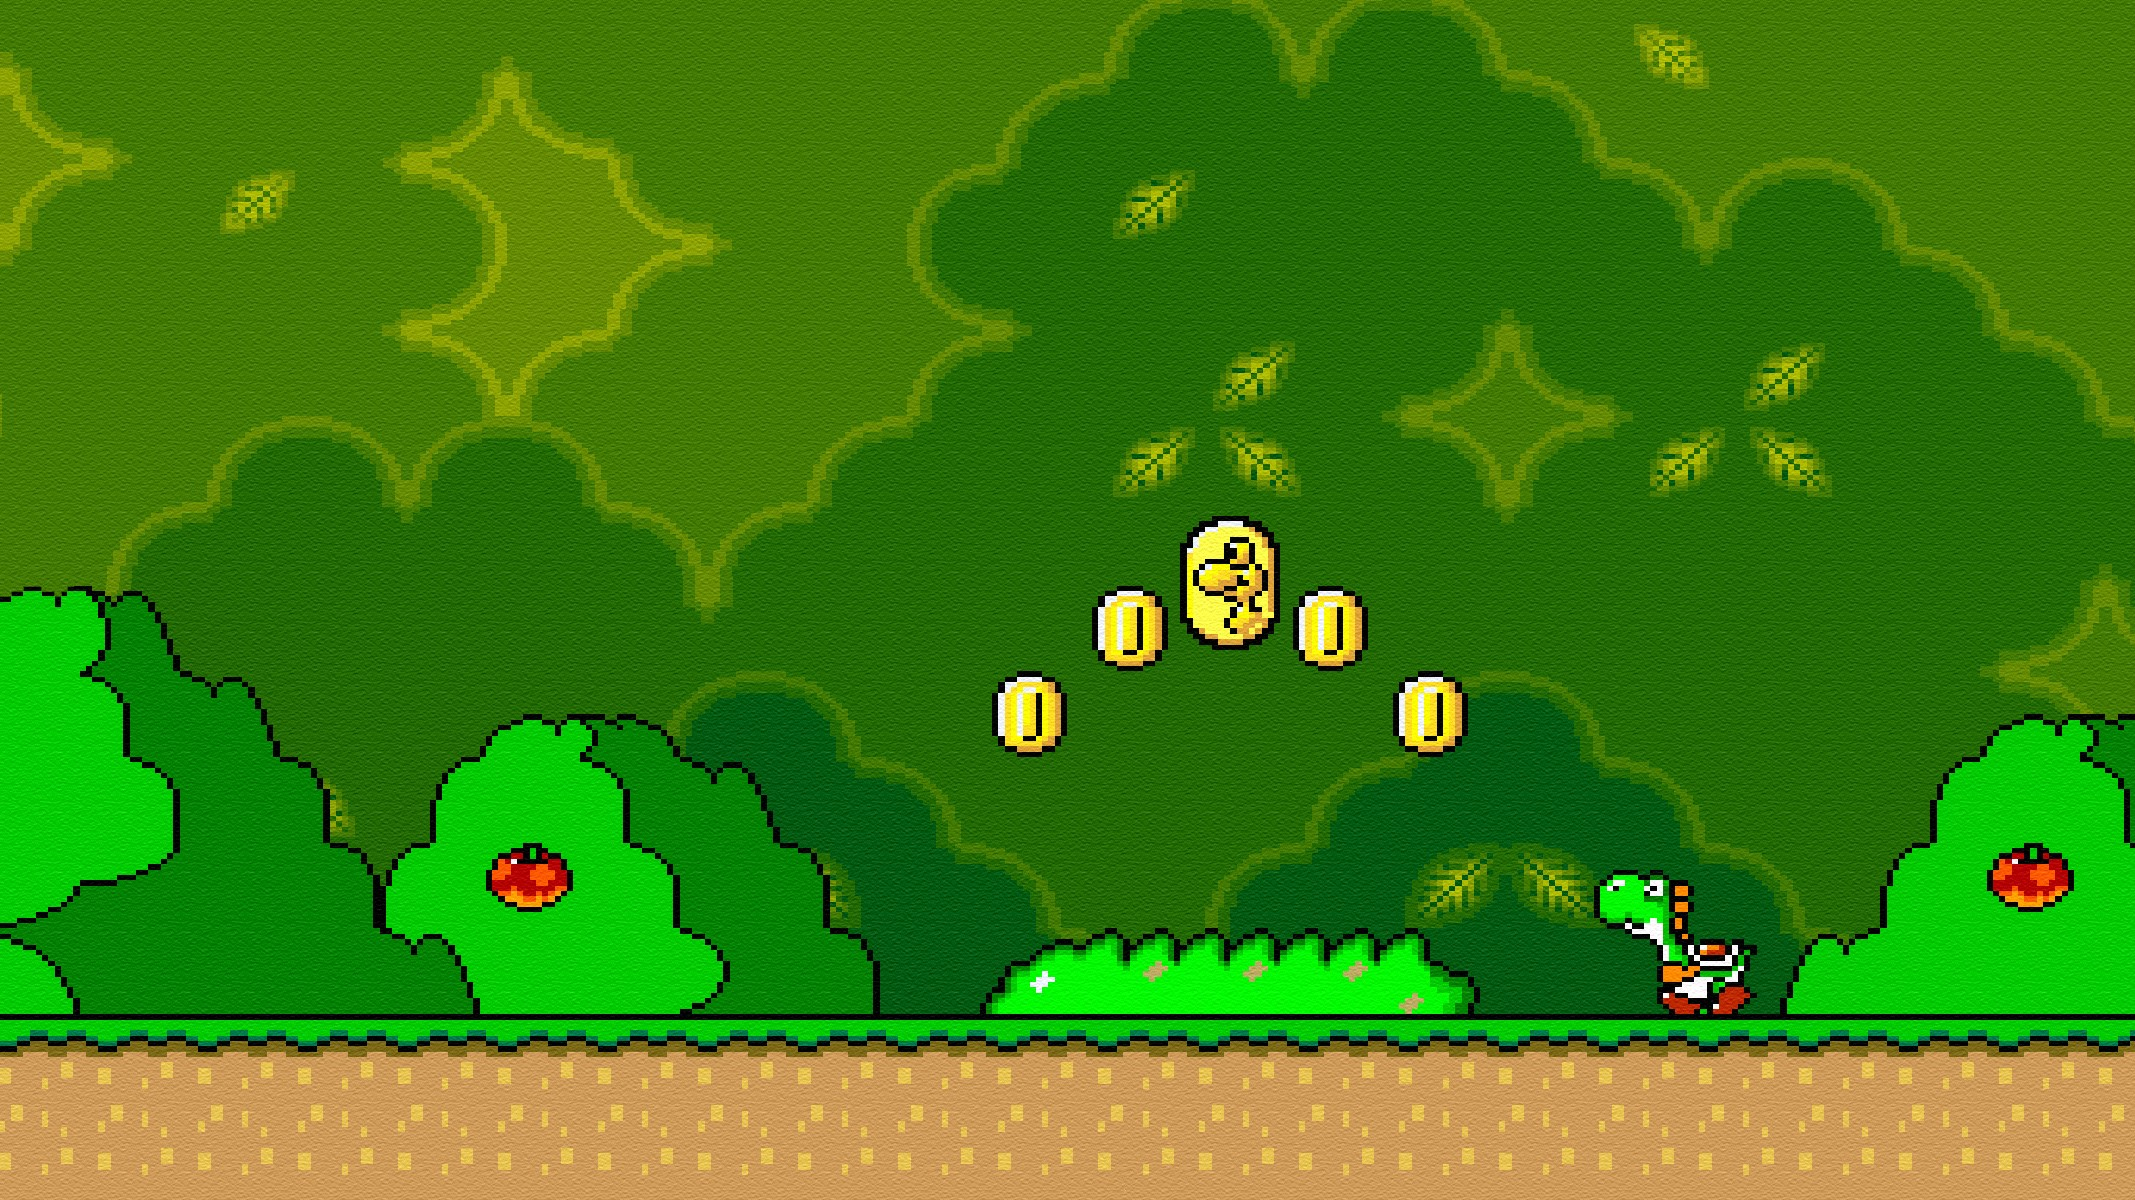 Best 3d Animated Wallpapers For Android Super Mario World Background 183 ① Download Free Beautiful